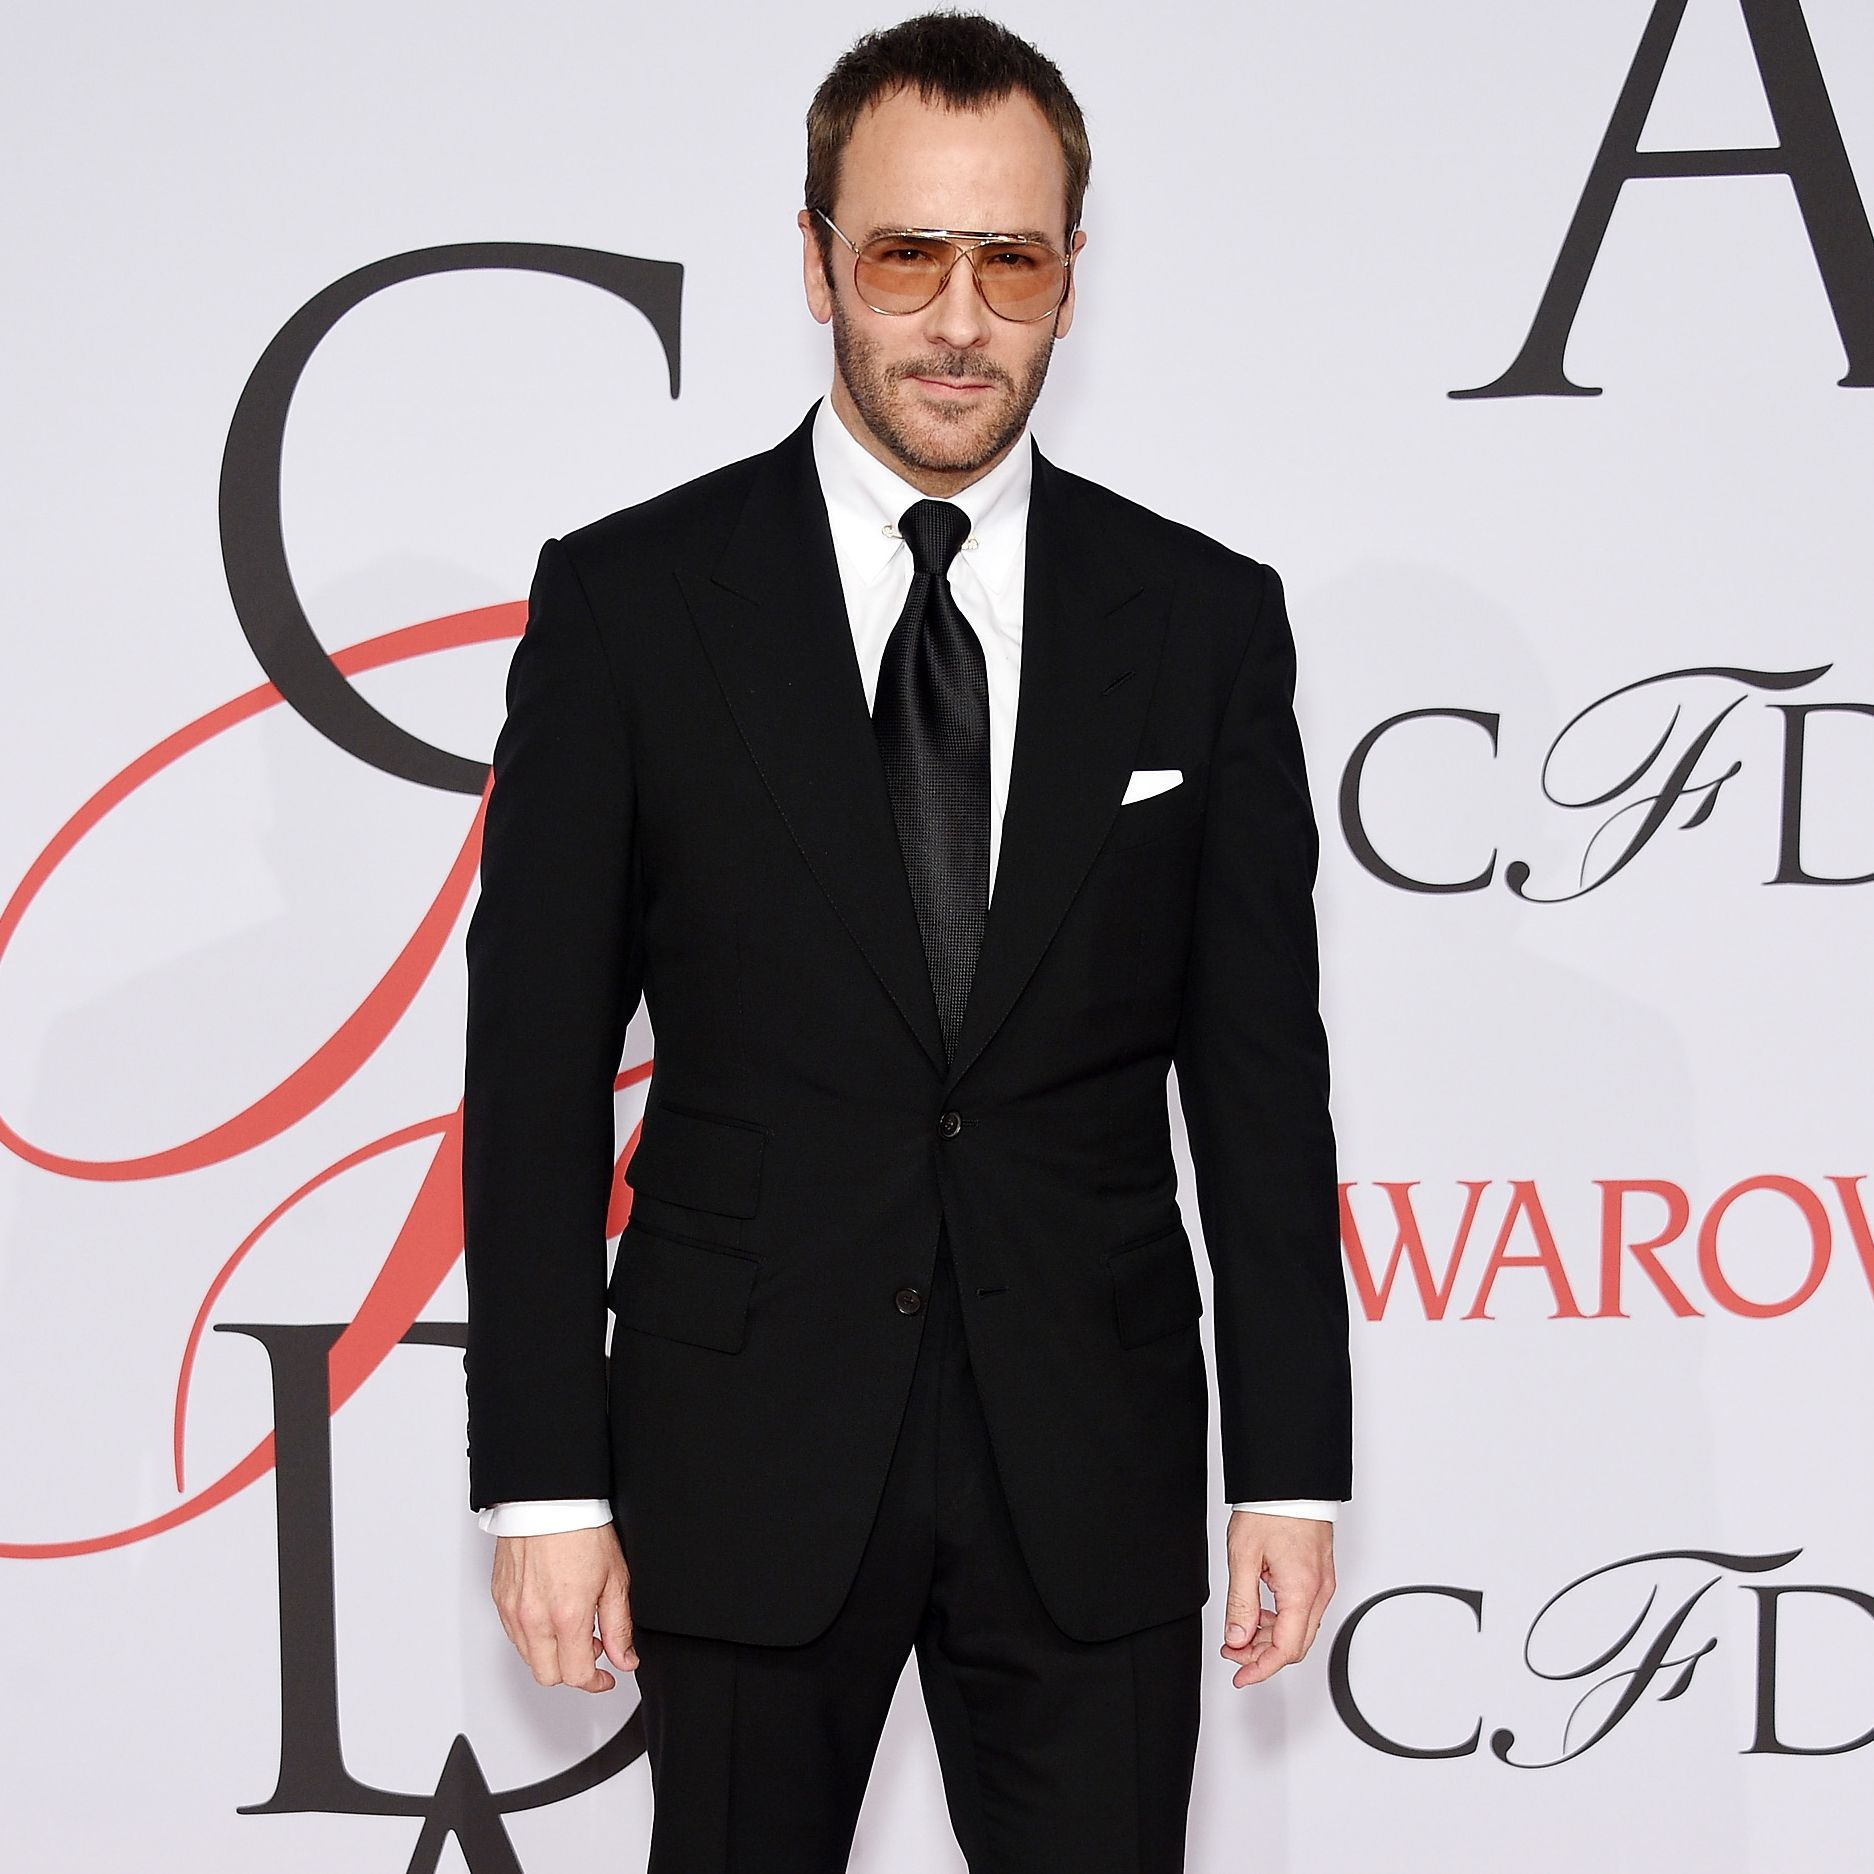 Designer Tom Ford will become the new Chairman of the Council of Fashion Designers of America . He succeeds Diane von Furstenberg, who has headed the organization for 13 years.